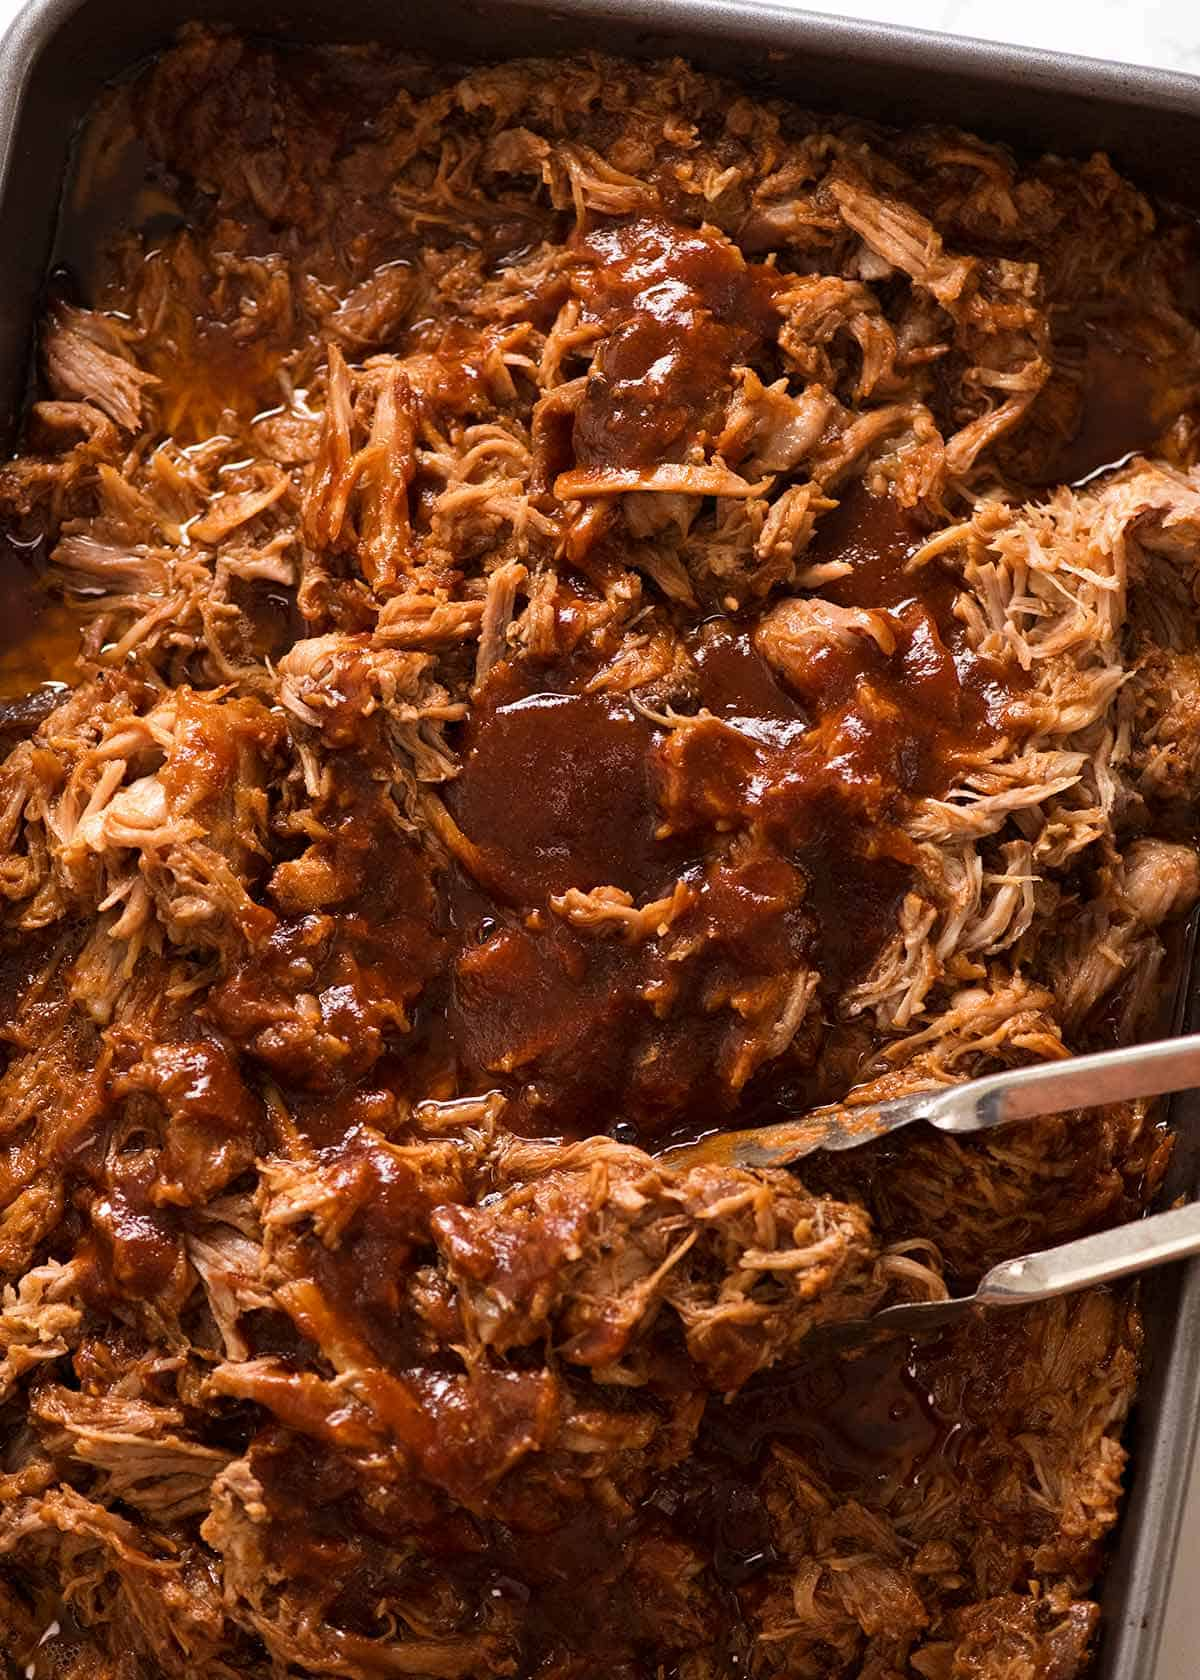 Large pan filled with Slow Cooker Pulled pork with BBQ Sauce